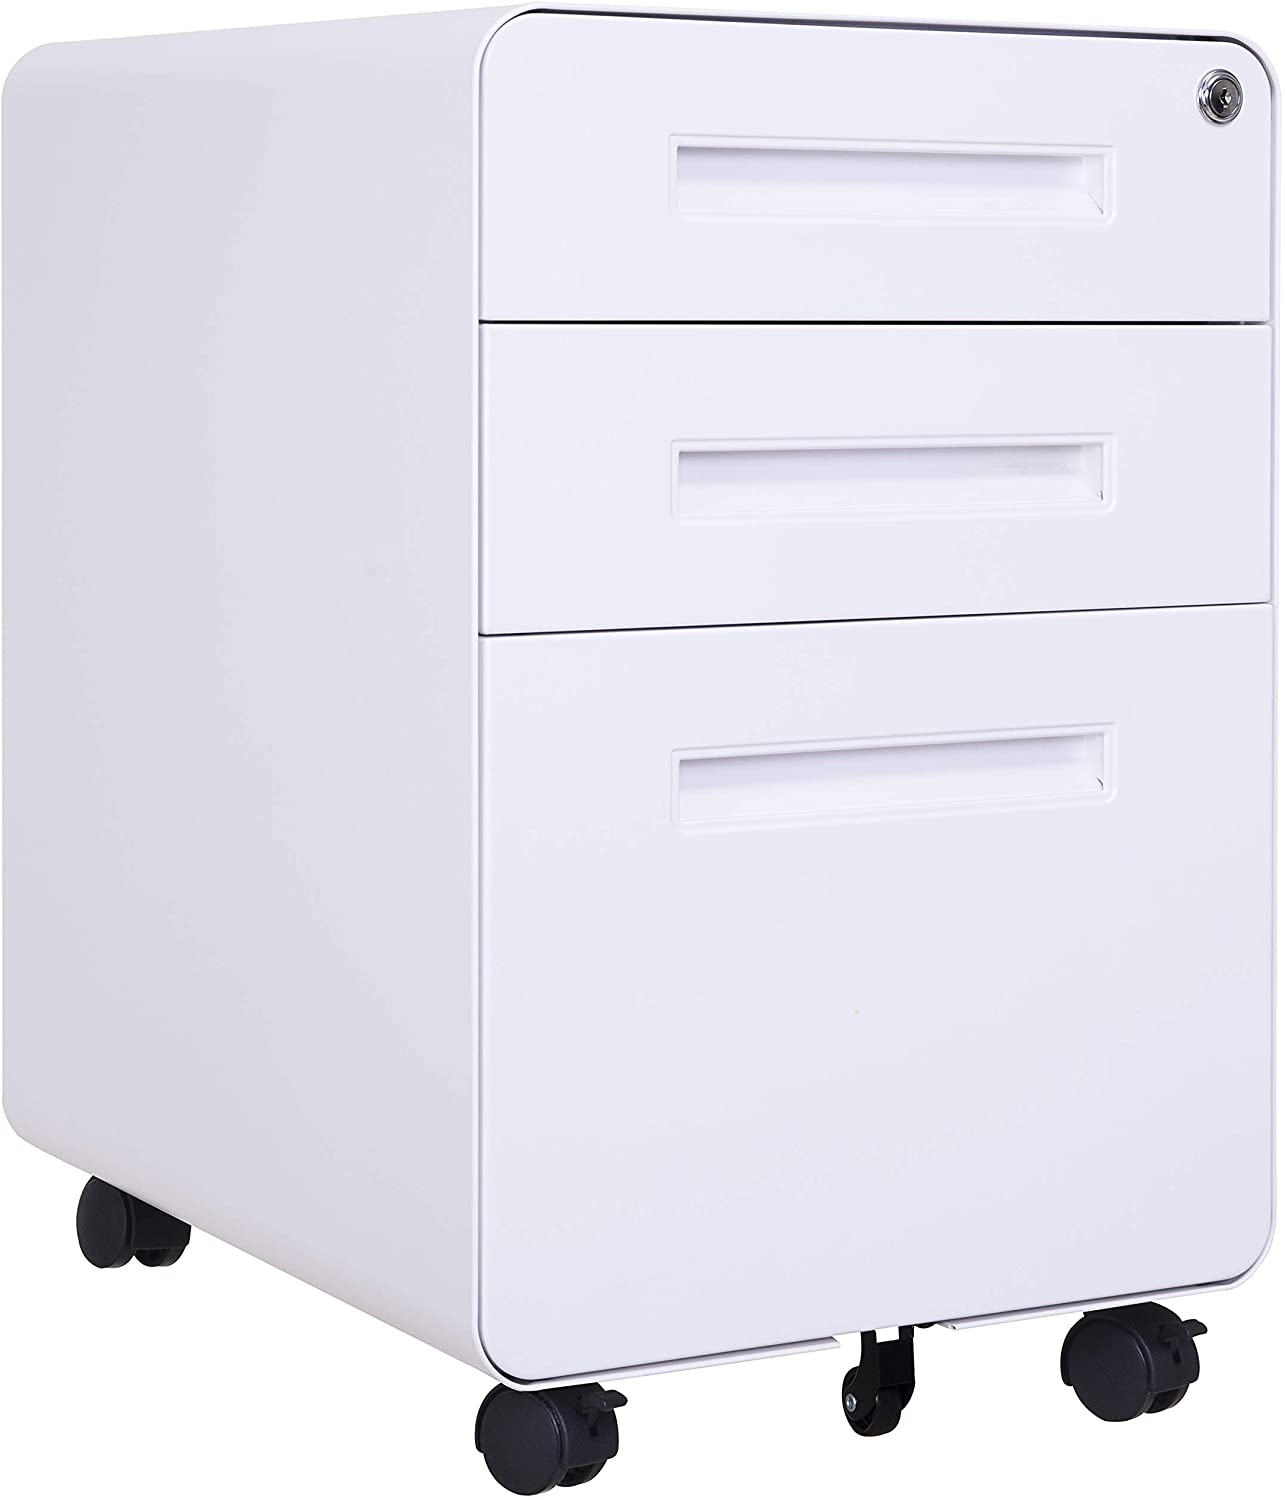 File Cabinet Mobile, 3 Drawer Metal Pedestal Filing Cabinets with 2 Lock Keys, 5 Rolling Casters, Fully Assembled Storage for Home Office Modern Vertical Hanging Folders A4 Letter Size (White)